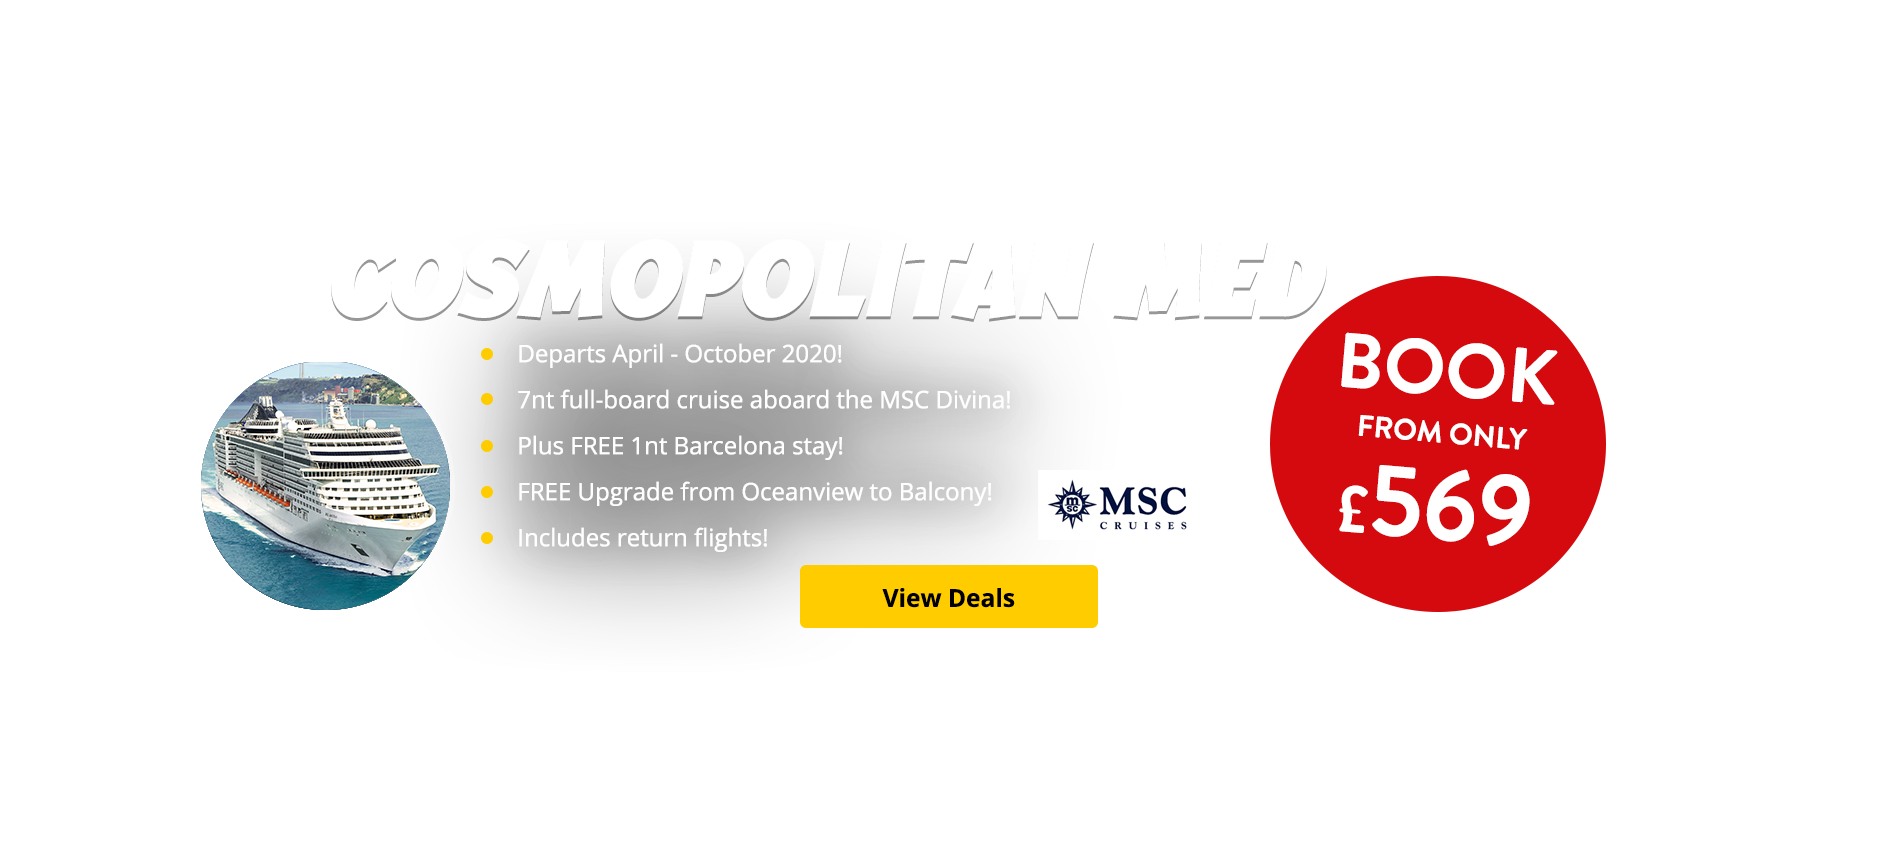 Departs April - October 2020! 7nt full-board cruise aboard the MSC Divina! Plus FREE 1nt Barcelona stay! FREE Upgrade from Oceanview to Balcony cabin! Includes return flights!